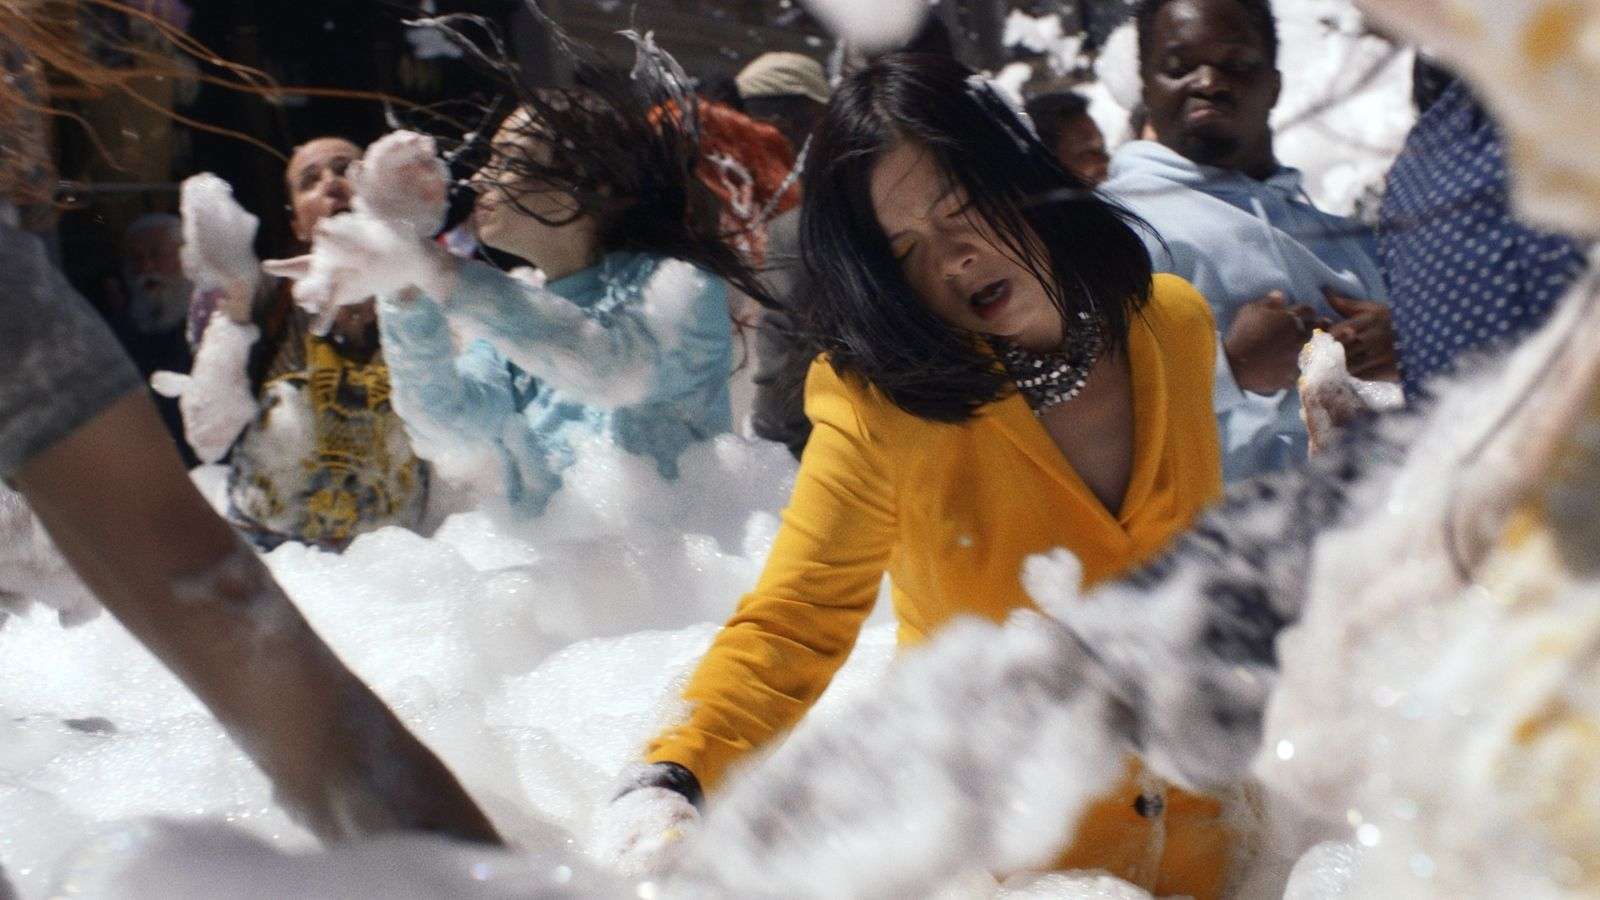 Can a Foam Party Change the World? Sustainable Household Brand Method Hopes So